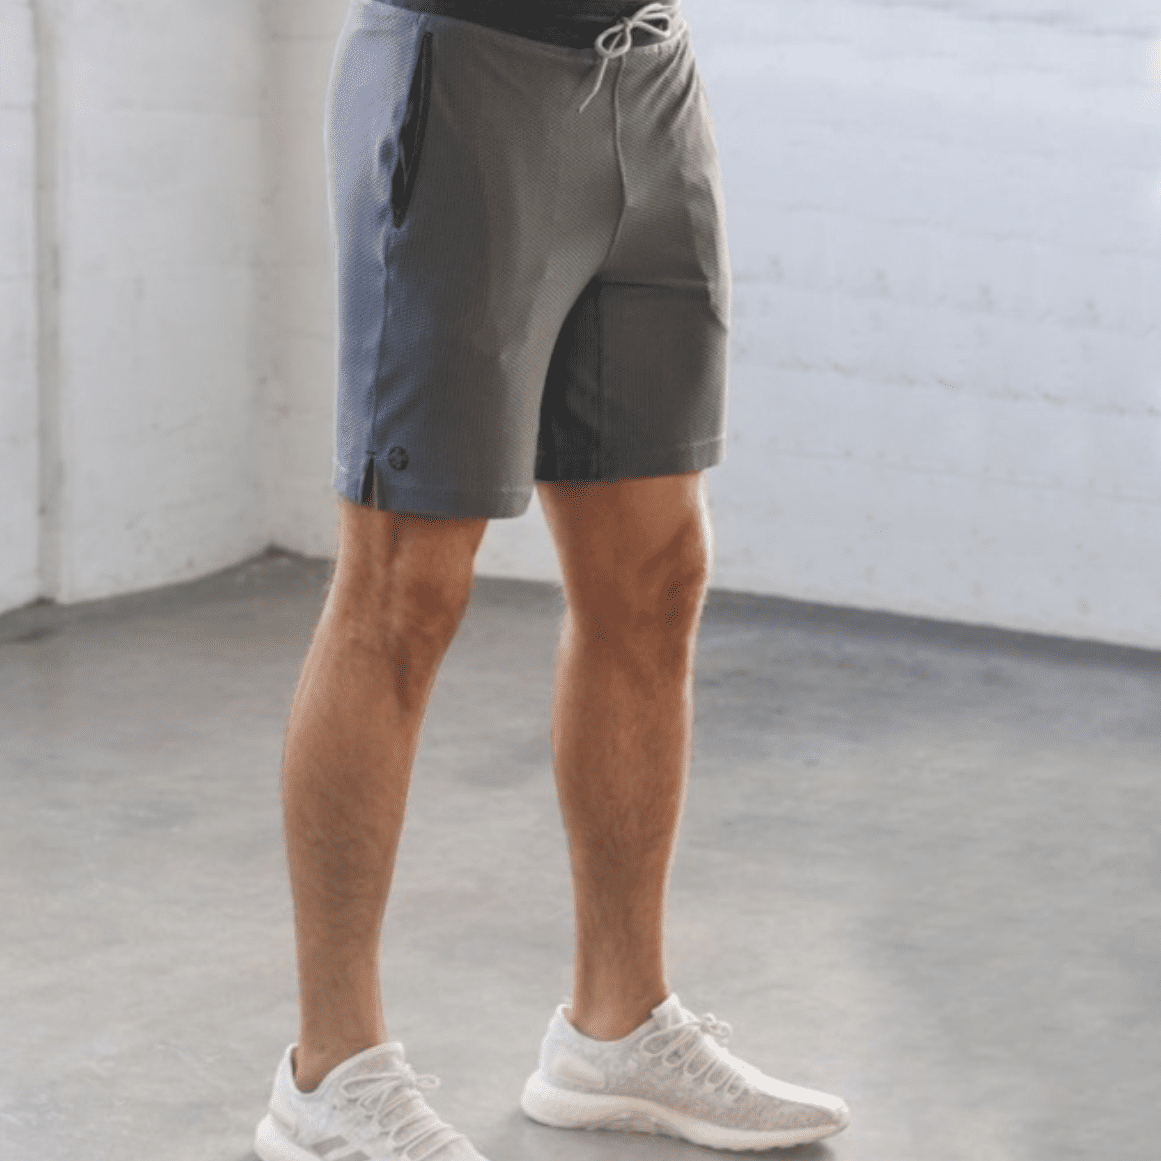 The 5 Best Yoga Shorts For Men Of 2019